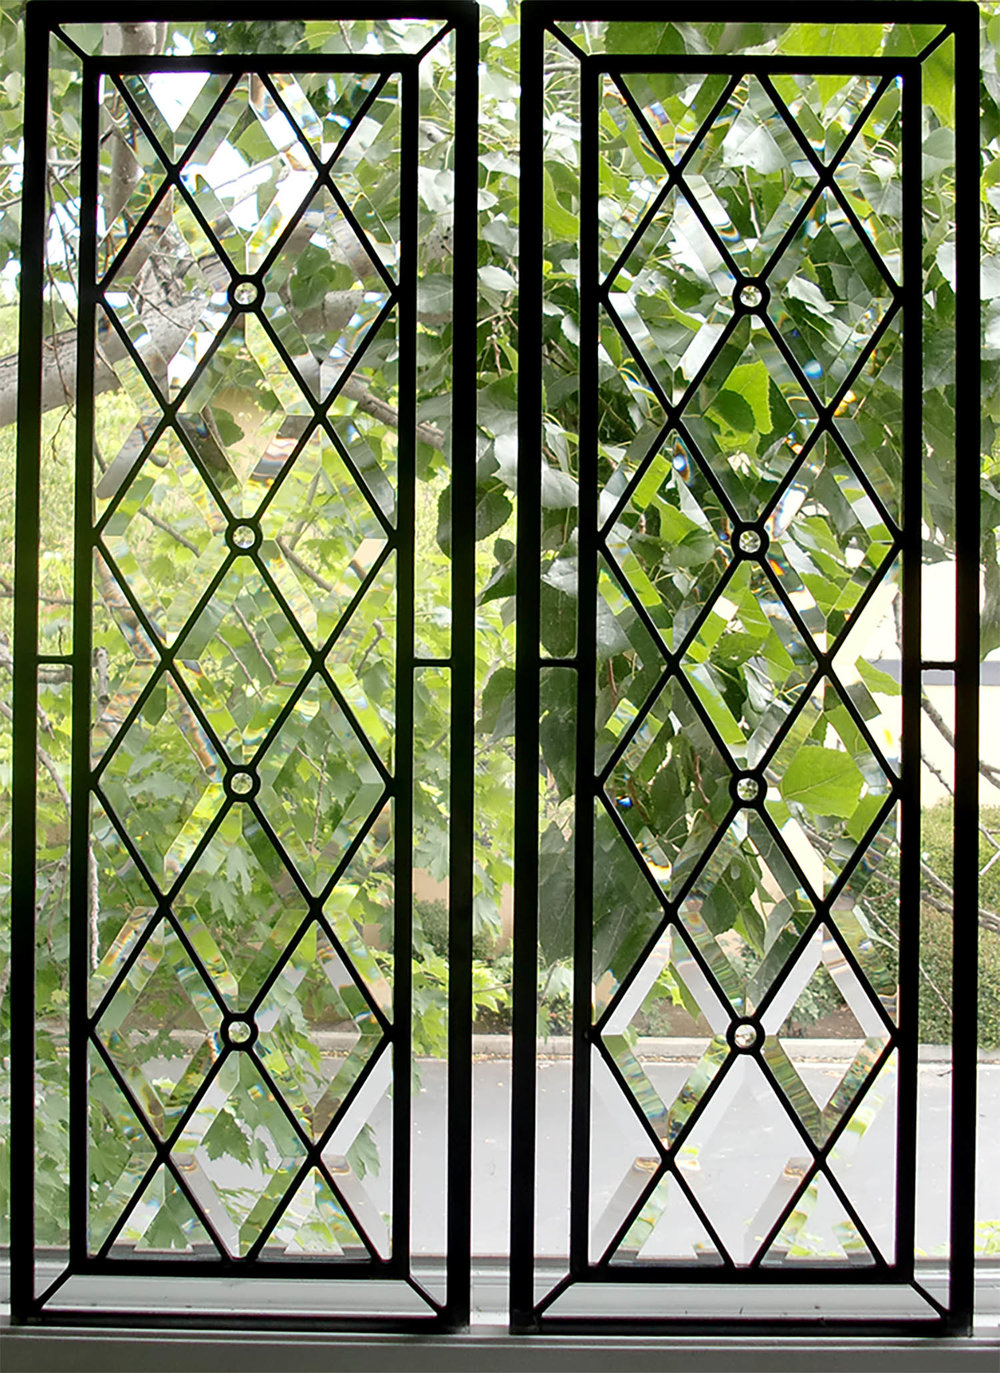 bevel diamond accent border clear texture leaded glass stained glass window palo alto atherton california san francisco san jose legacy glass.jpg